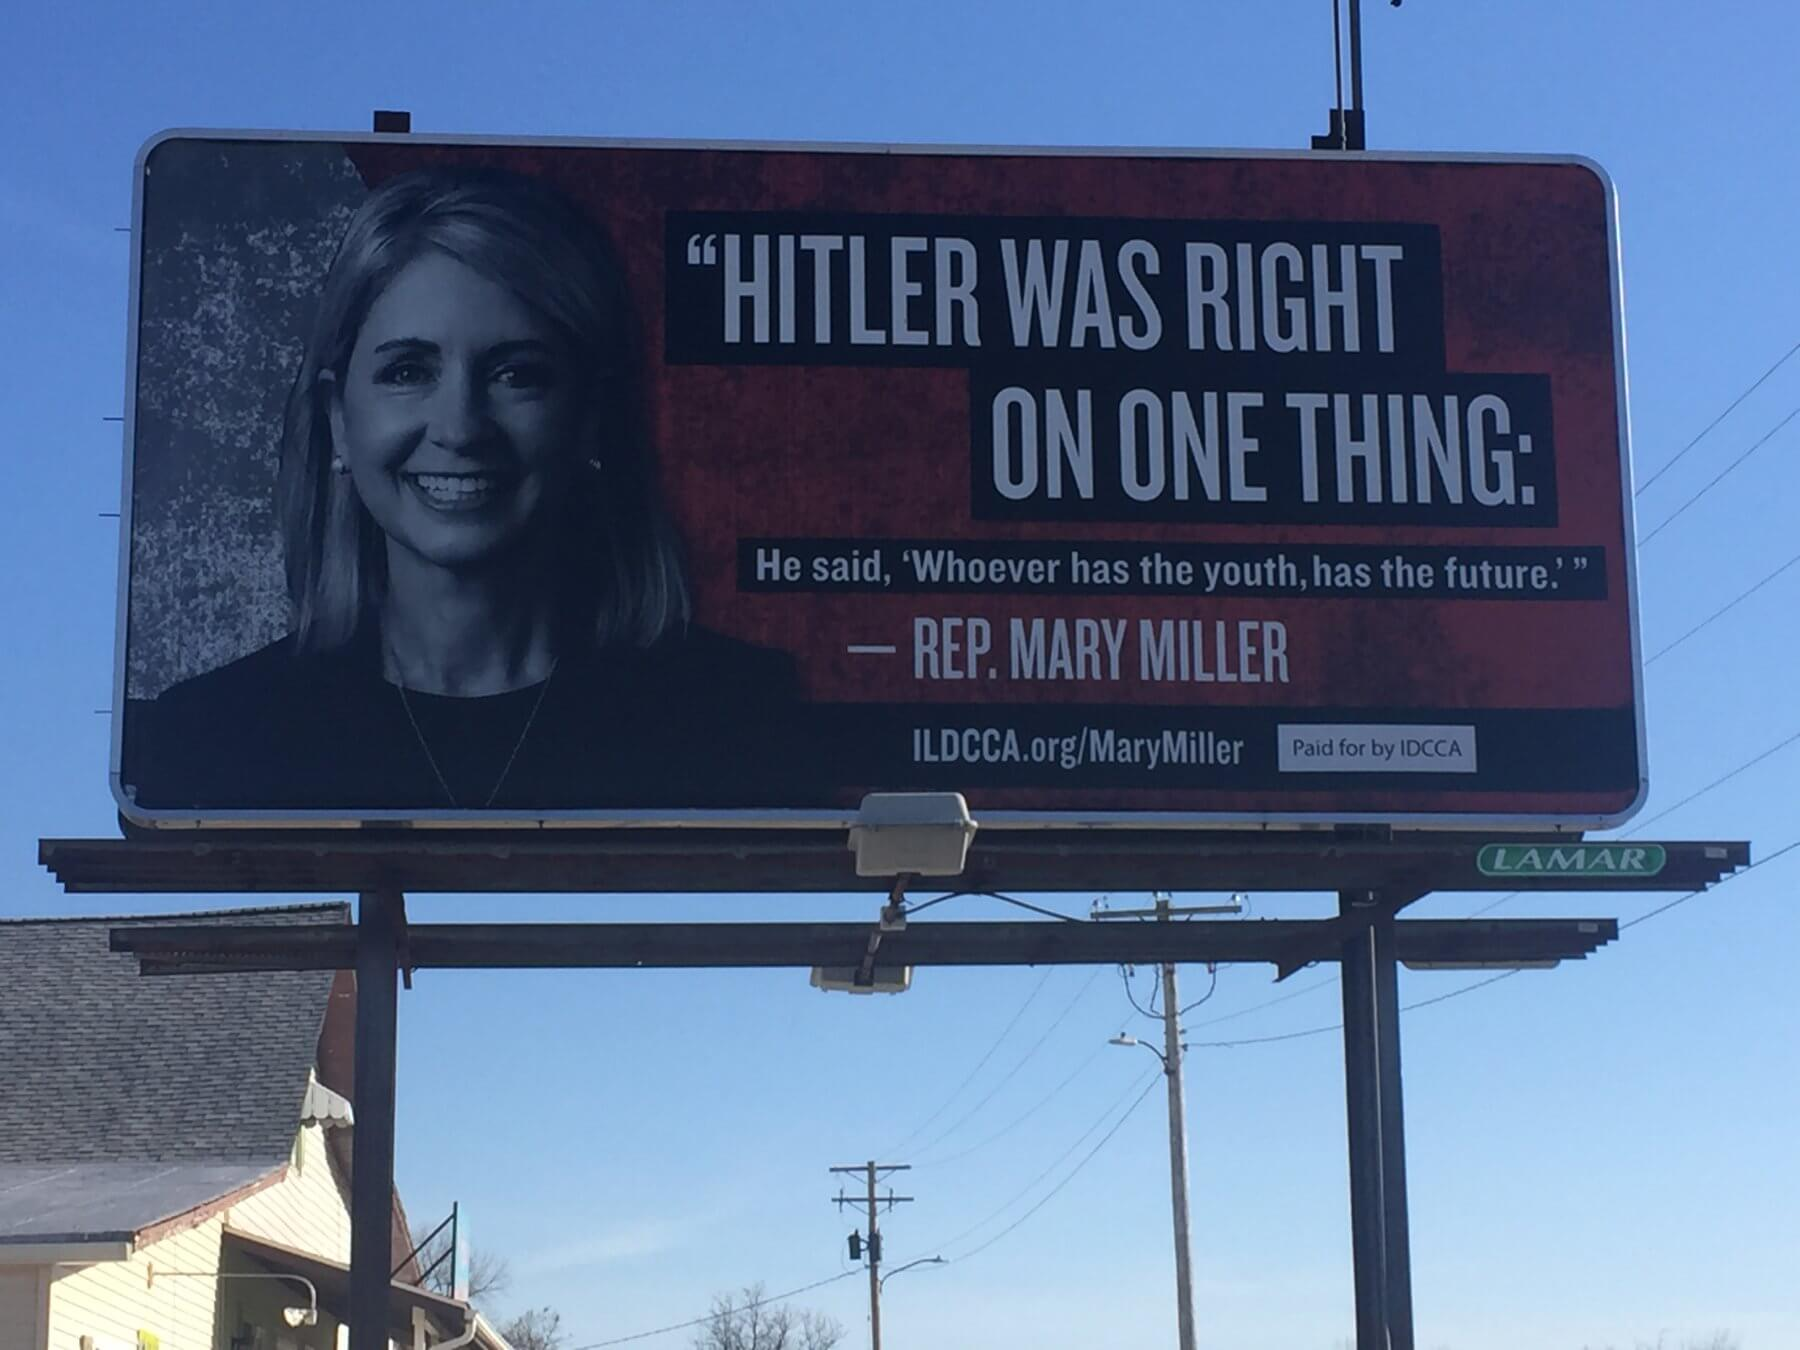 Statement: New Billboard to Hold Congresswoman Mary Miller Accountable